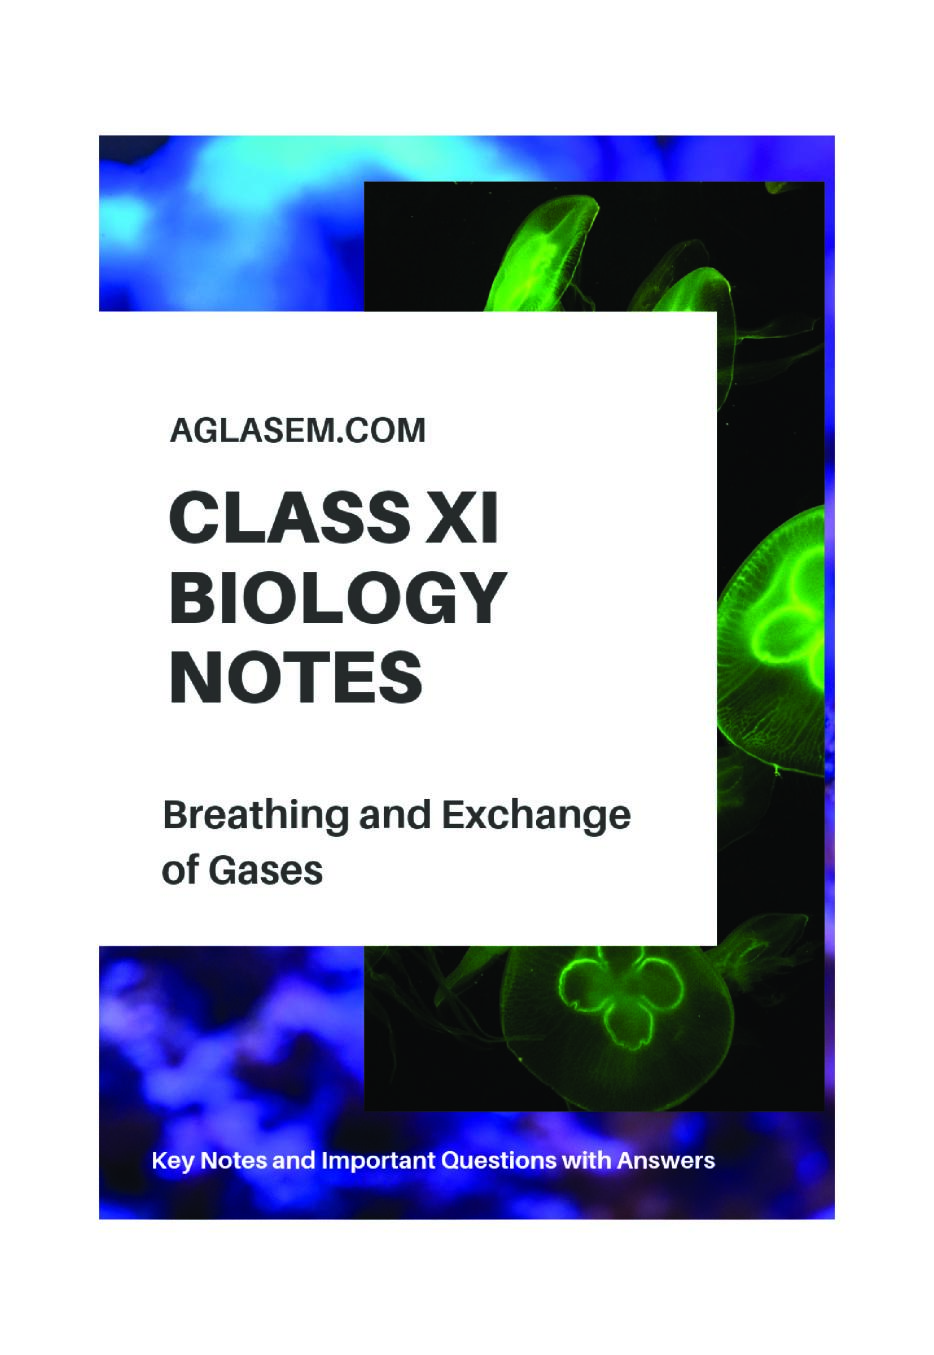 Class 11 Biology Notes for Breathing and Exchange of Gases